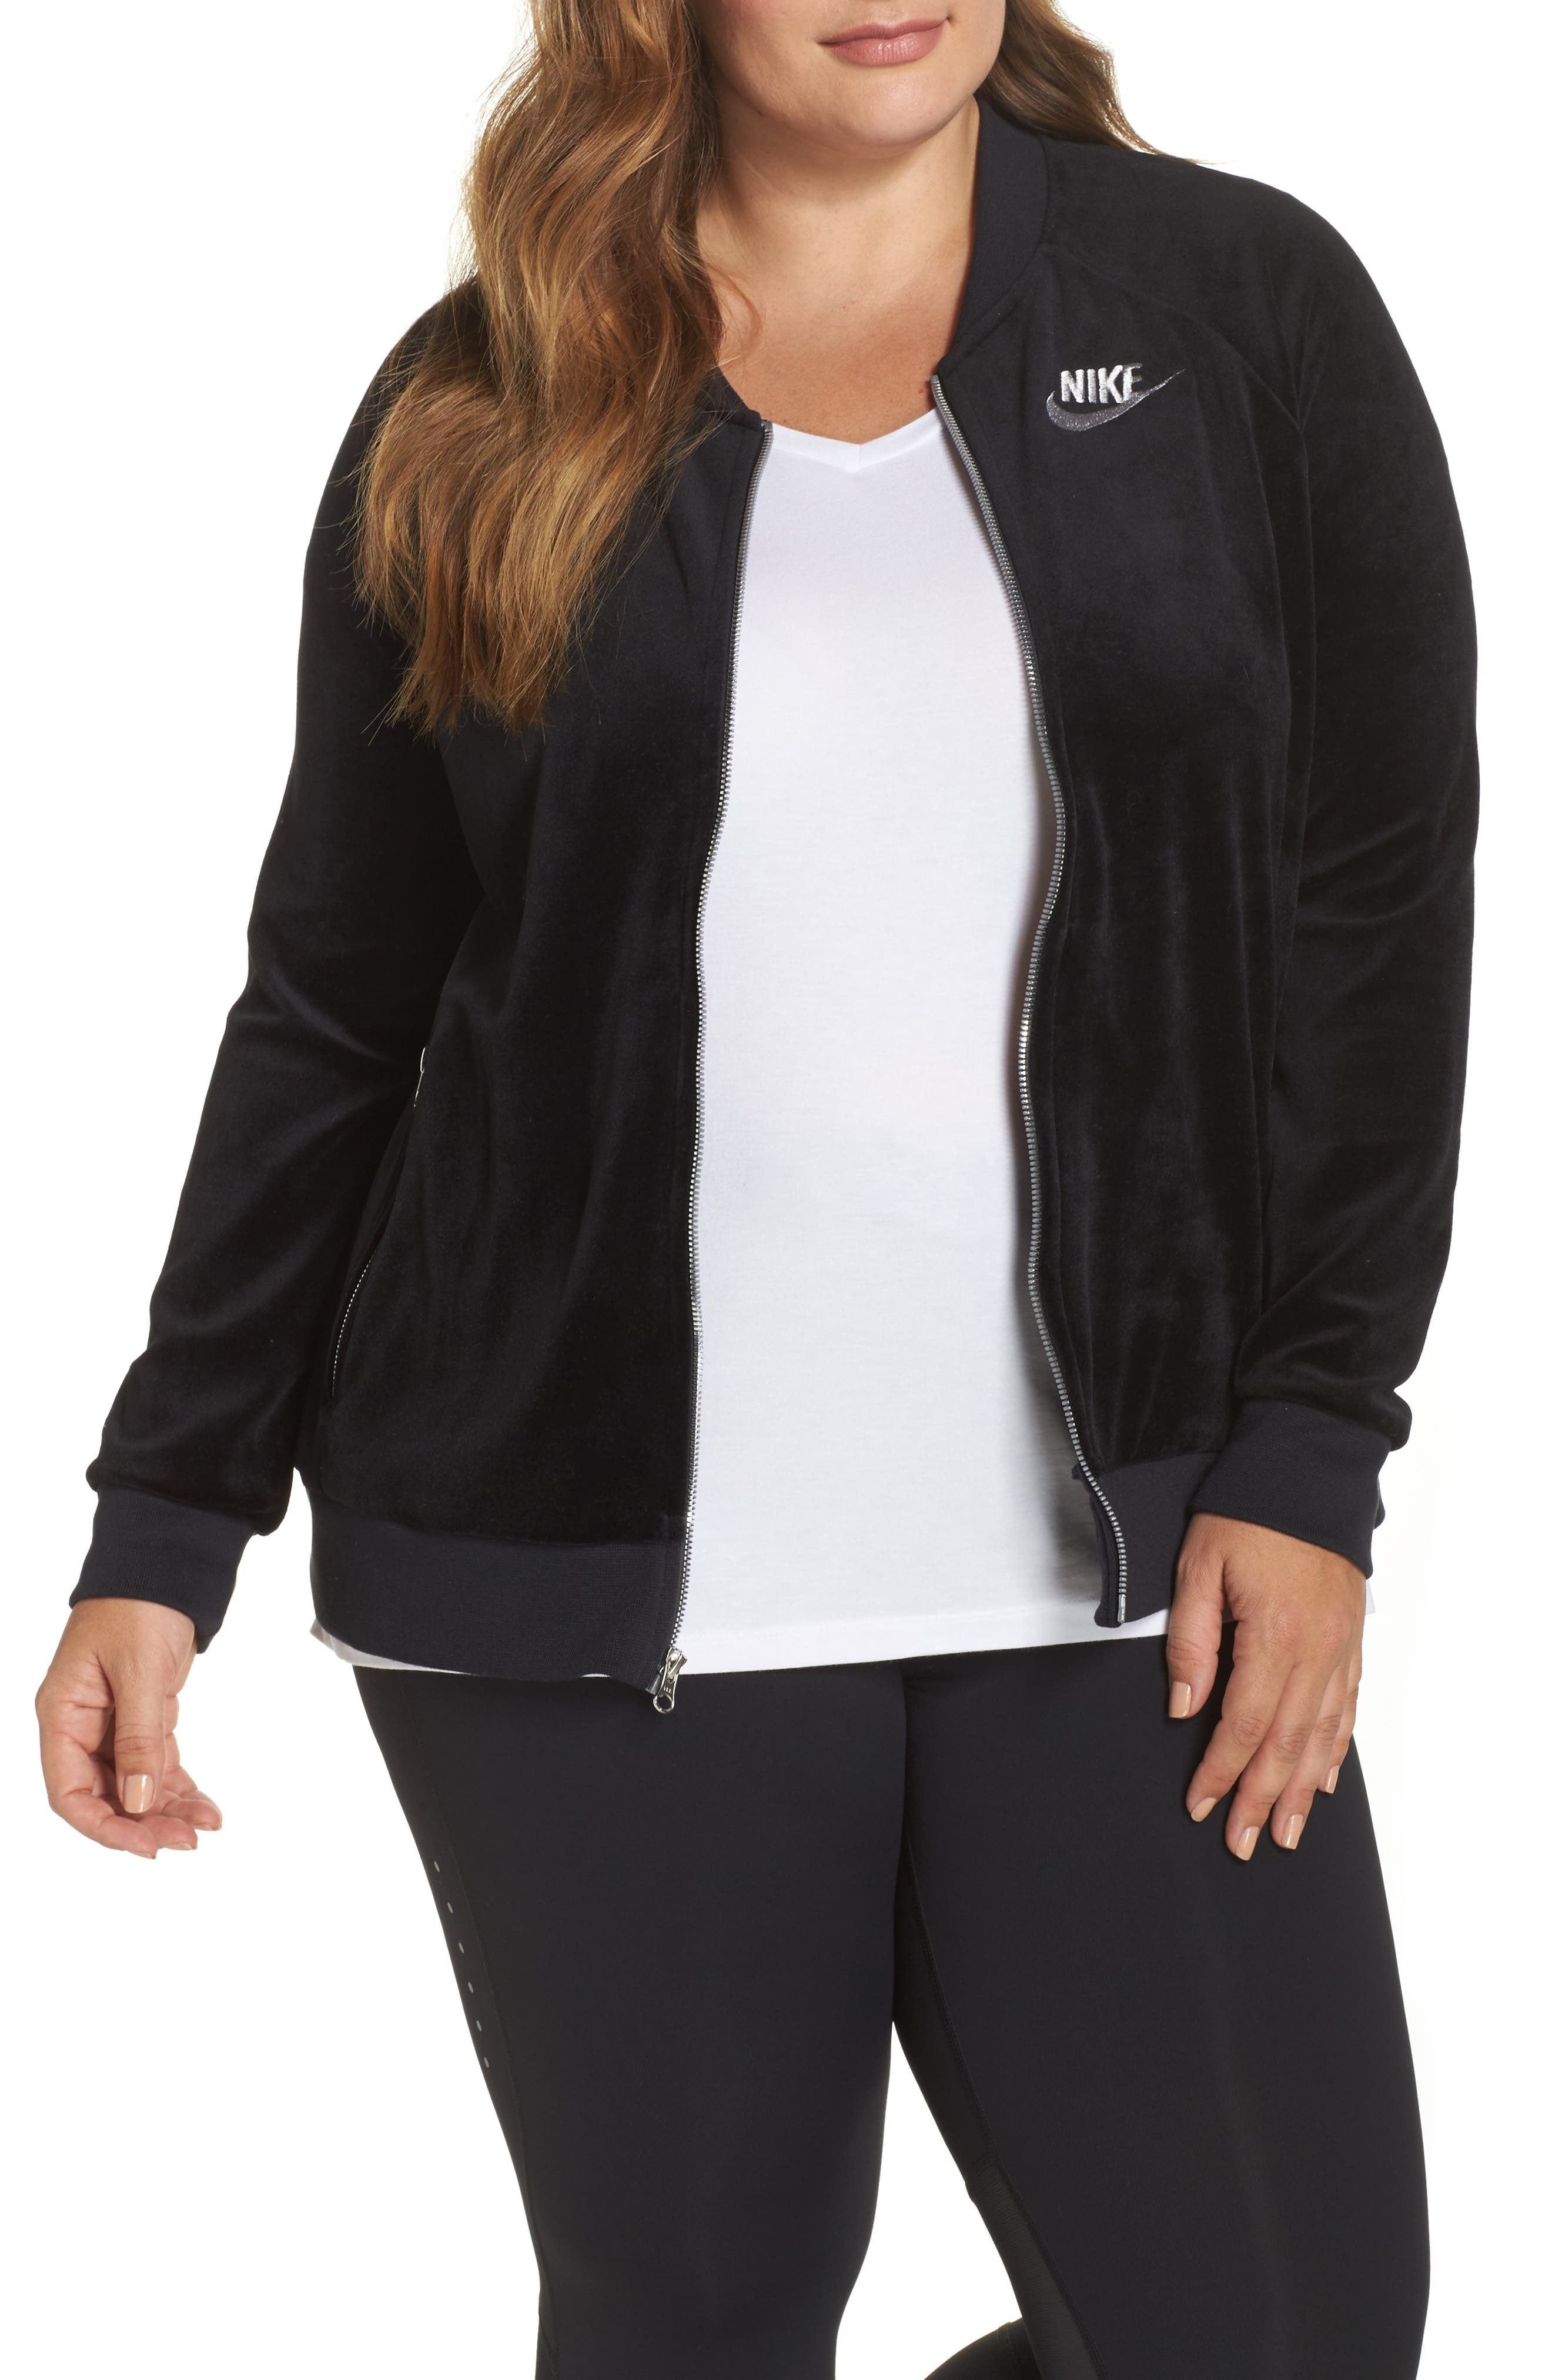 Velour Jacket,                         Main,                         color, Black/ Metallic Silver